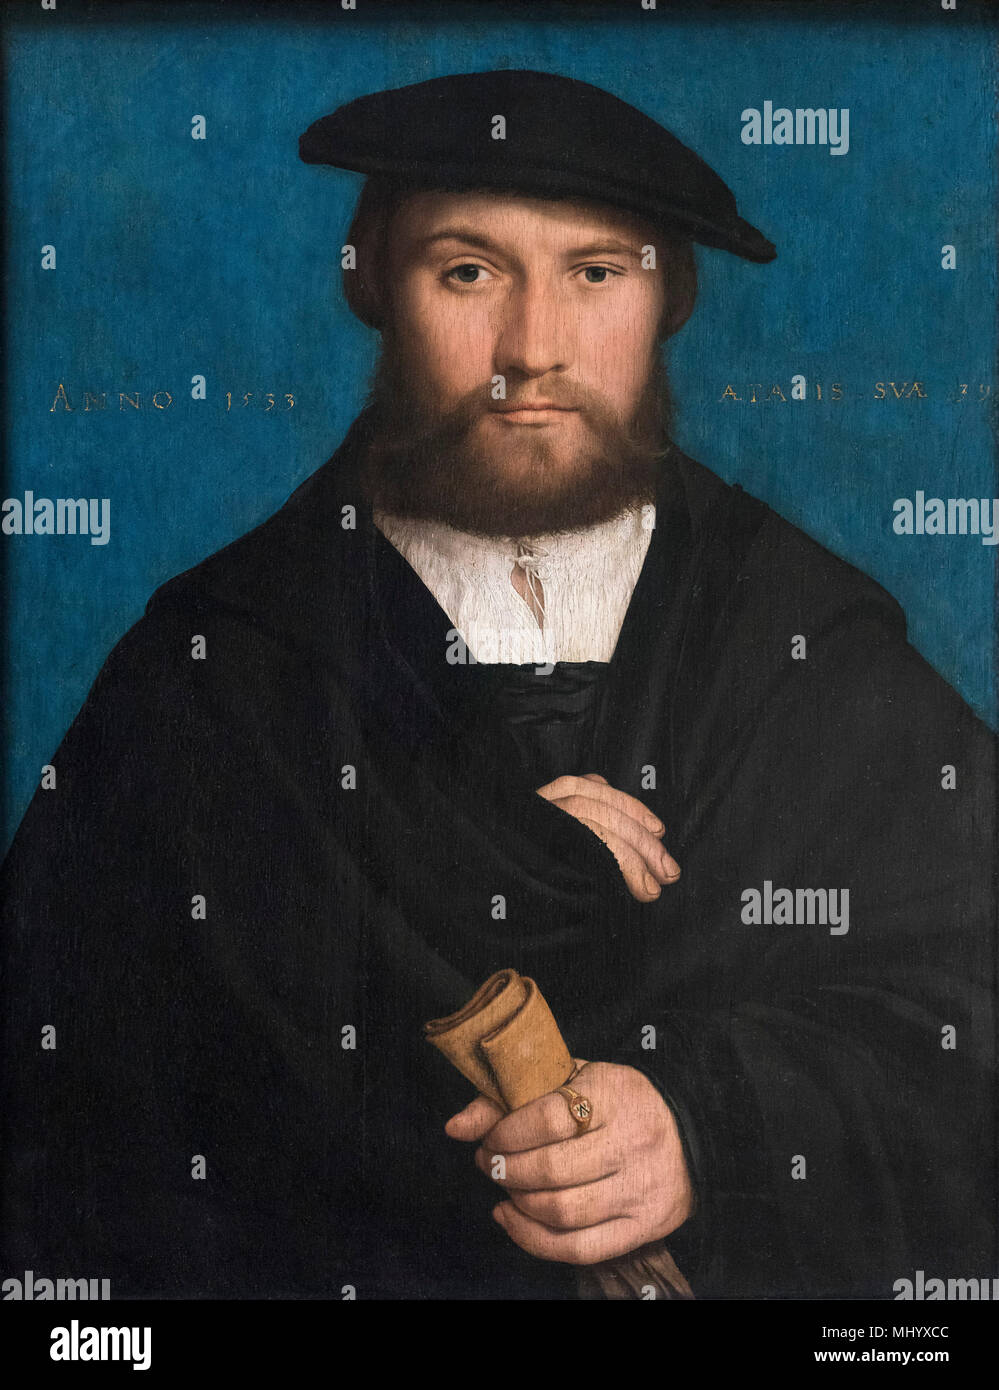 Hans Holbein the Younger (1497-1543), Portrait of a member of the von Wedigh family, possibly Hermann Hillebrandt von Wedigh, 1533. - Stock Image